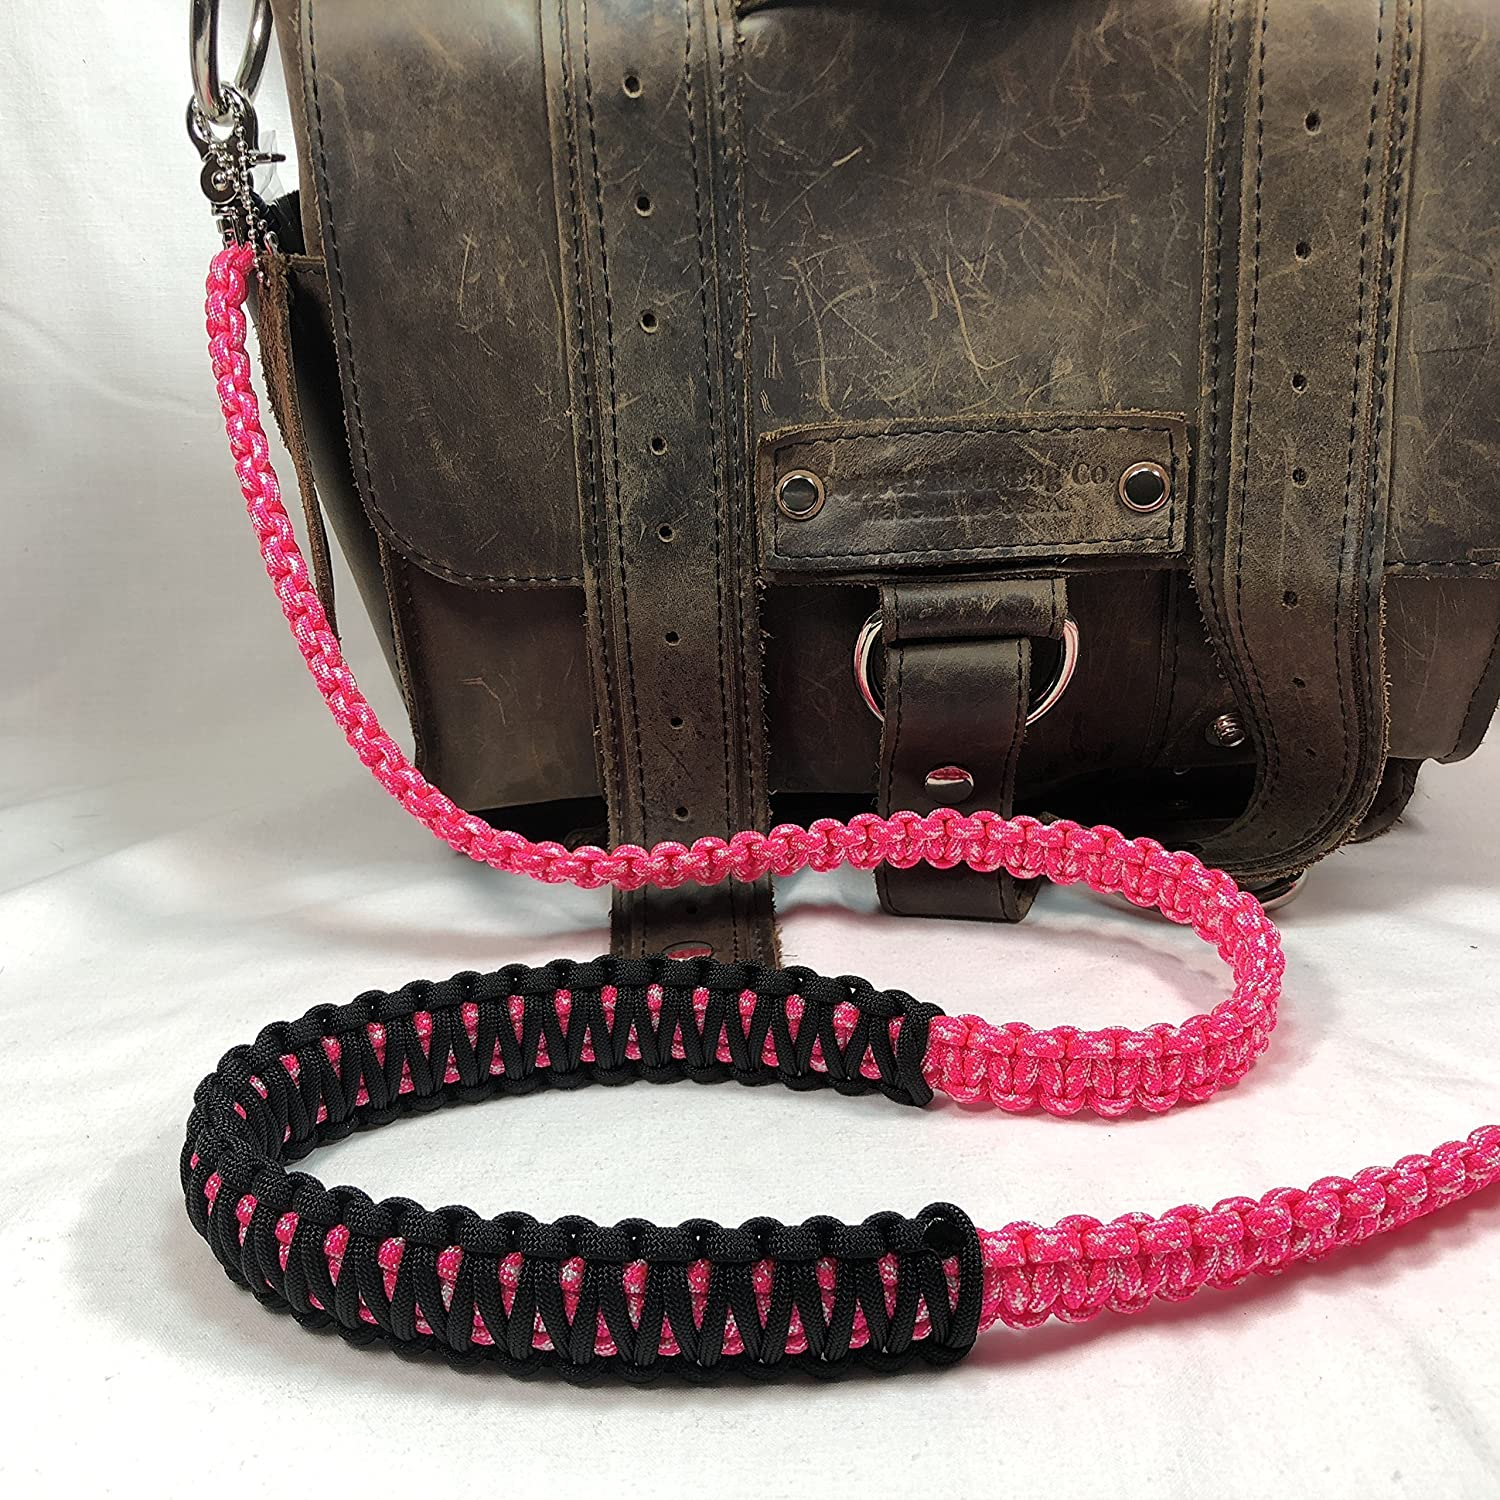 Neon Pink and White Camo Paracord Cross Shoulder Strap, Handbag, Satchel Strap, Duffel Bag